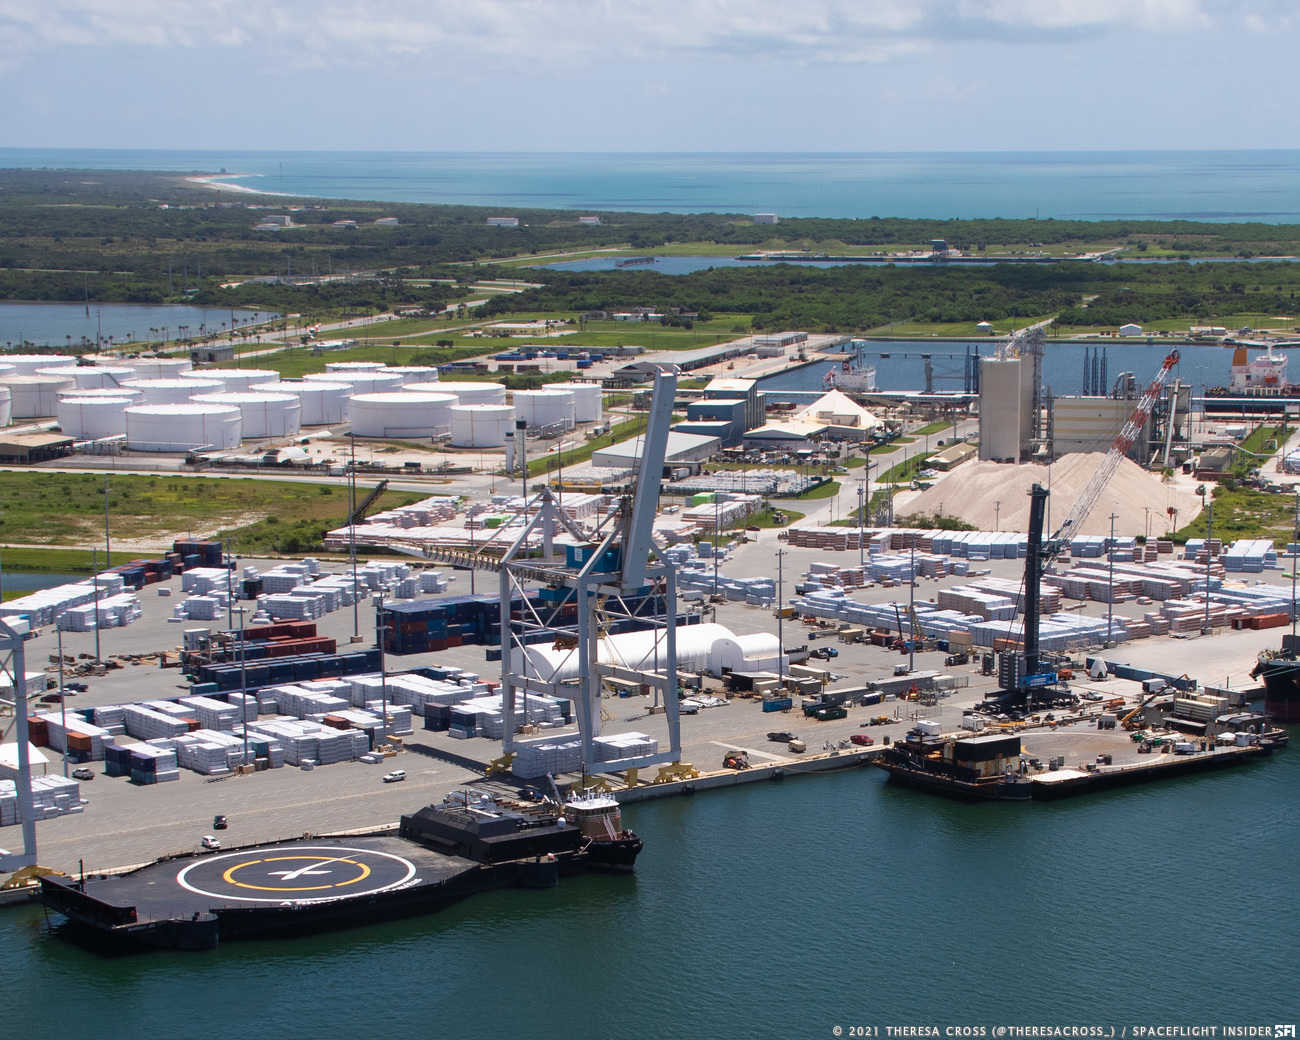 """""""A Shortfall of Gravitas"""" next to """"Just Read the Instructions"""" at a wharf at Port Canaveral. Credit: Thresa Cross / Spaceflight Insider"""